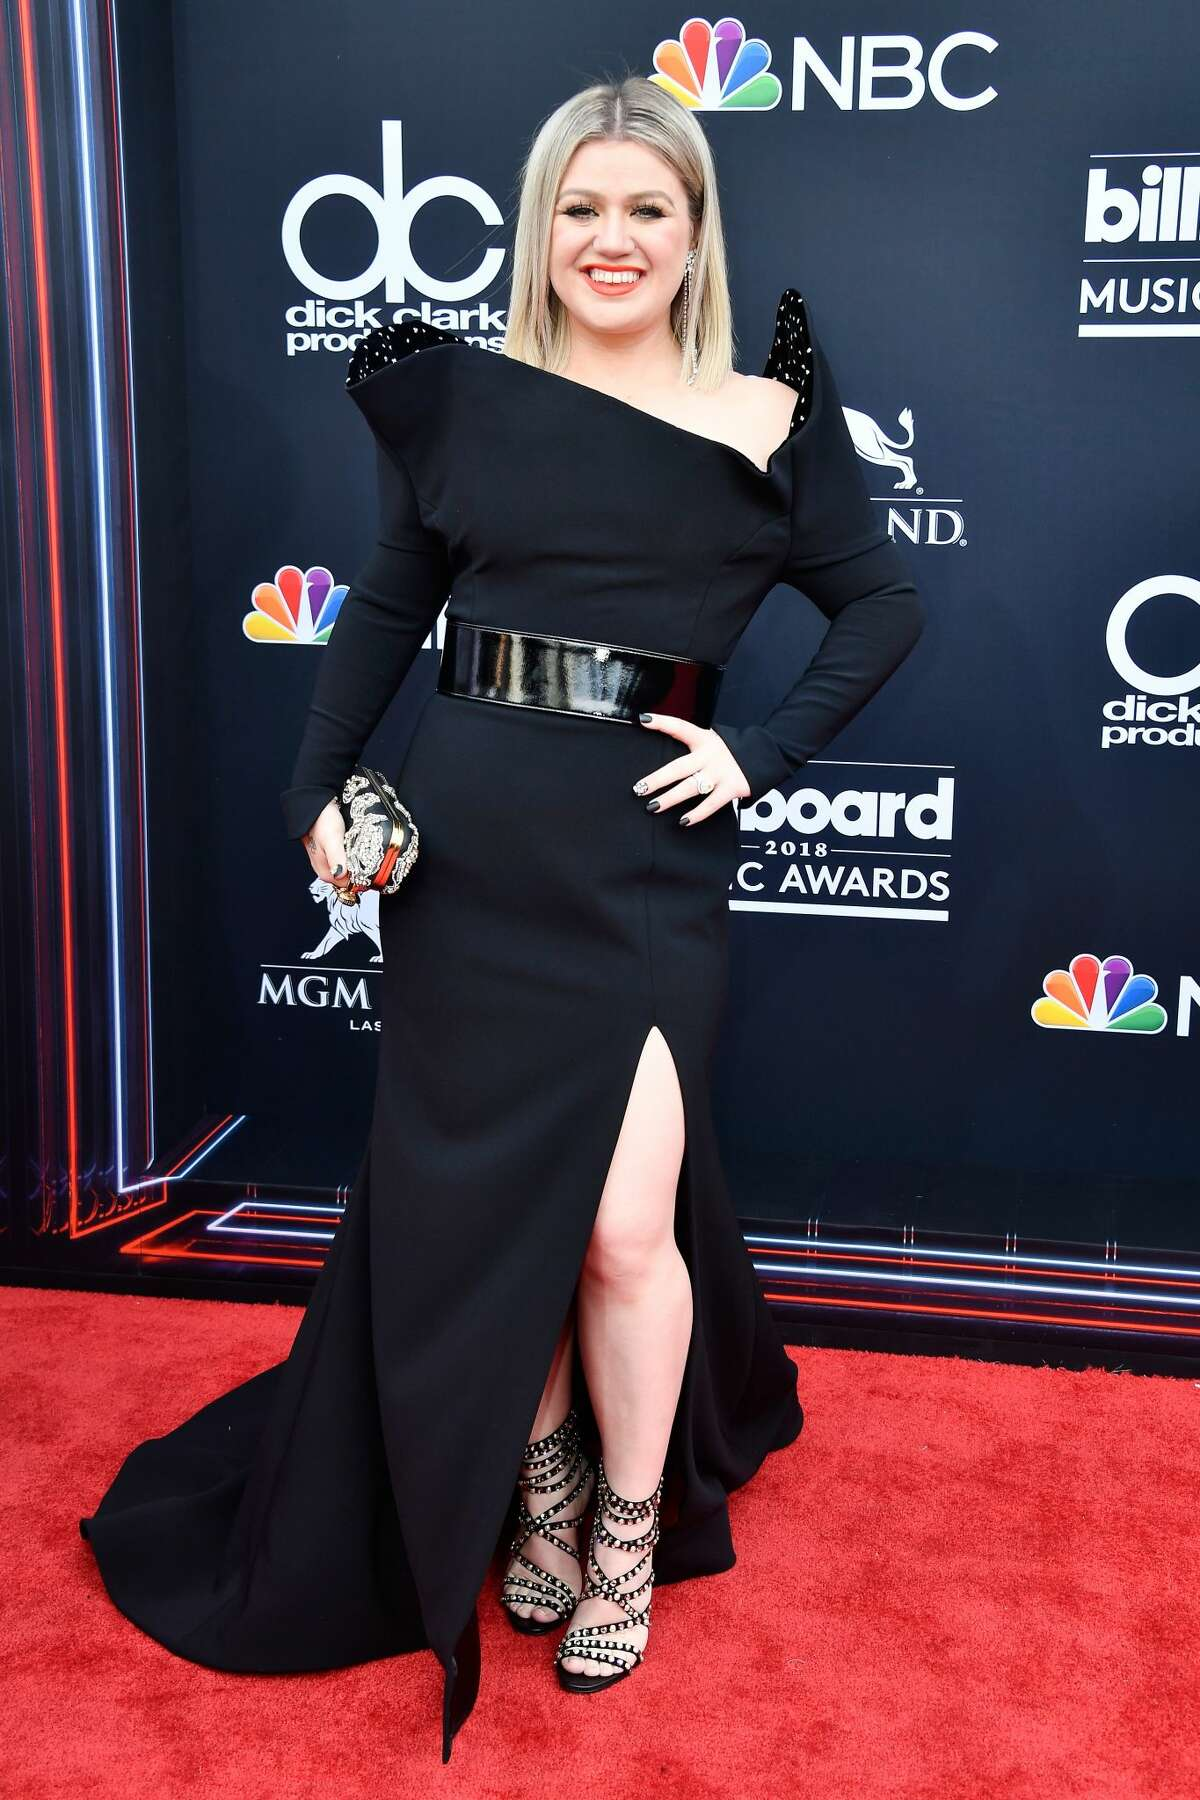 Best: Bowing down to Kelly Clarkson. She's looking better than ever.